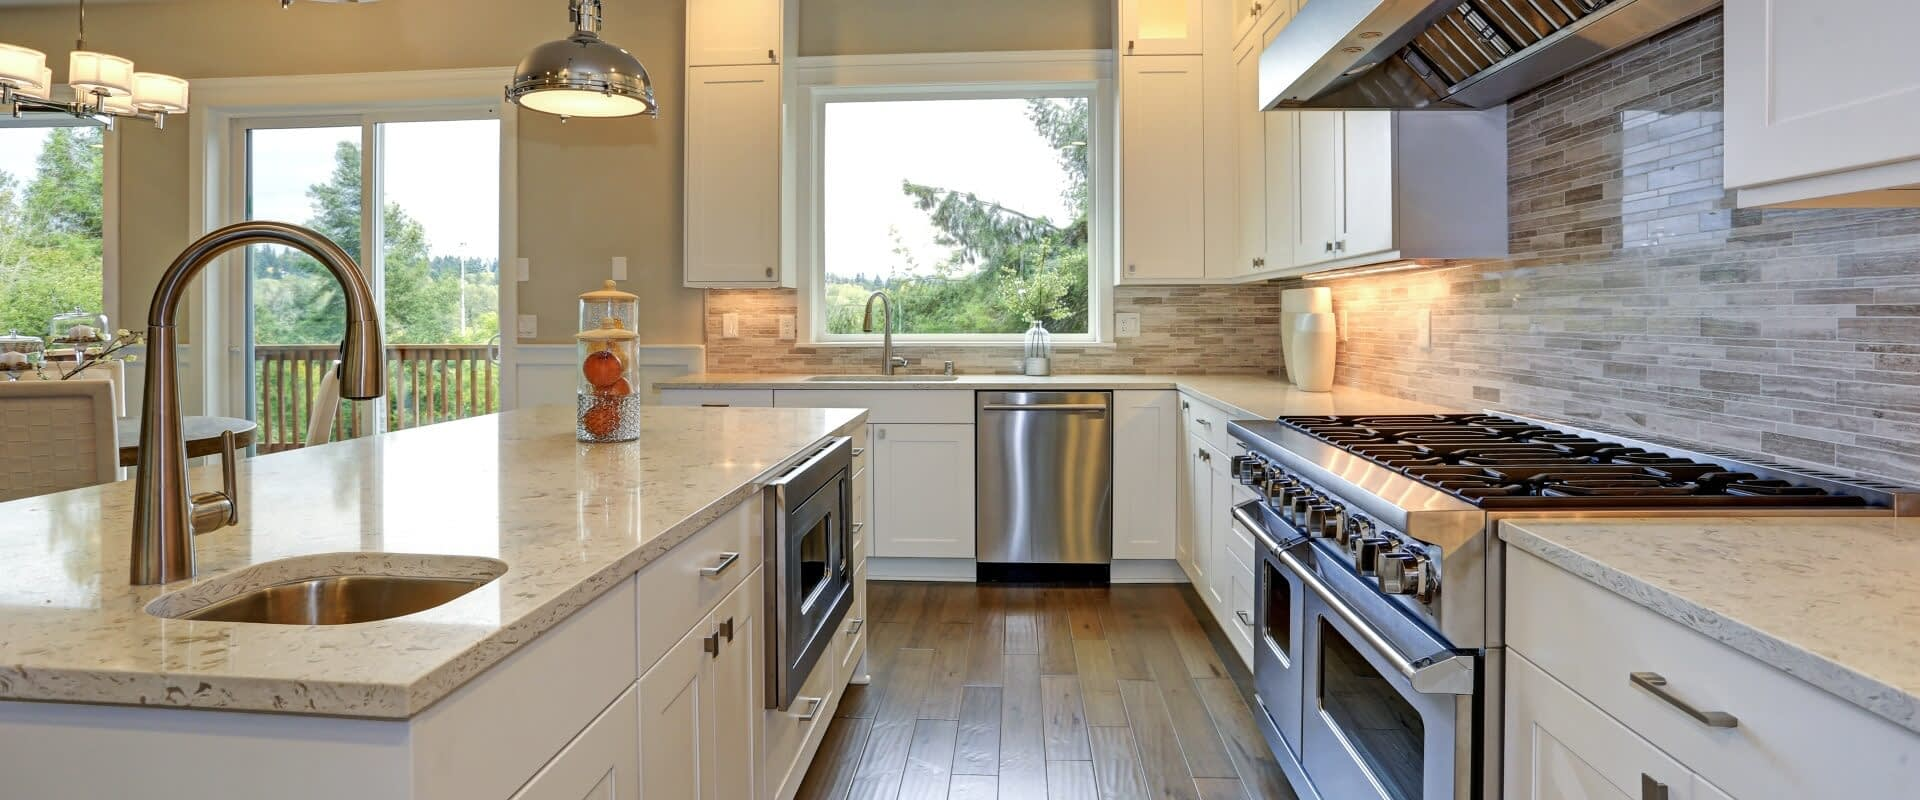 Stylish Kitchen Renovation from Awesome Home Renovations